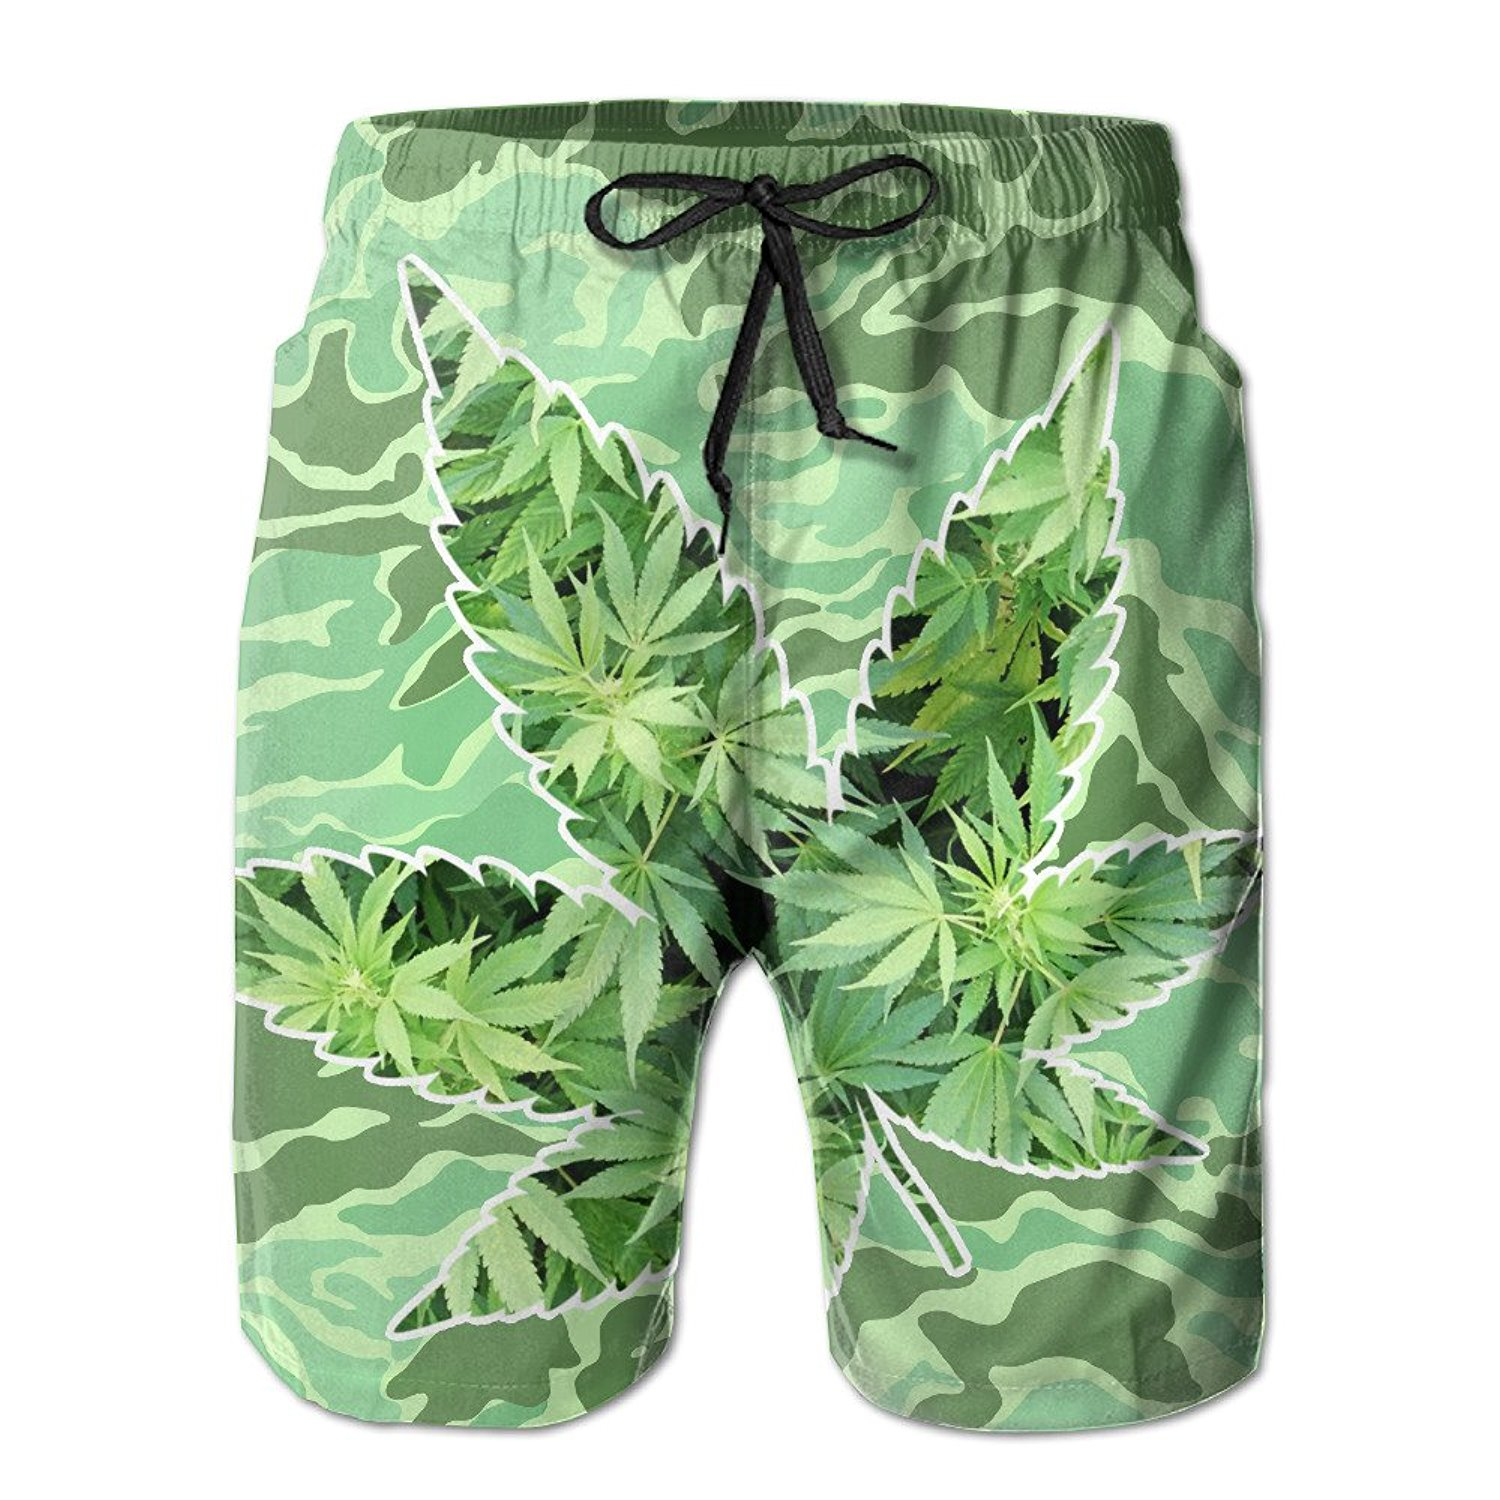 4ce8bf3683 Get Quotations · Men's Quick Dry Ganja Leaf Weed Smokers Beach Shorts Swim  Trunks Beach Board Shorts